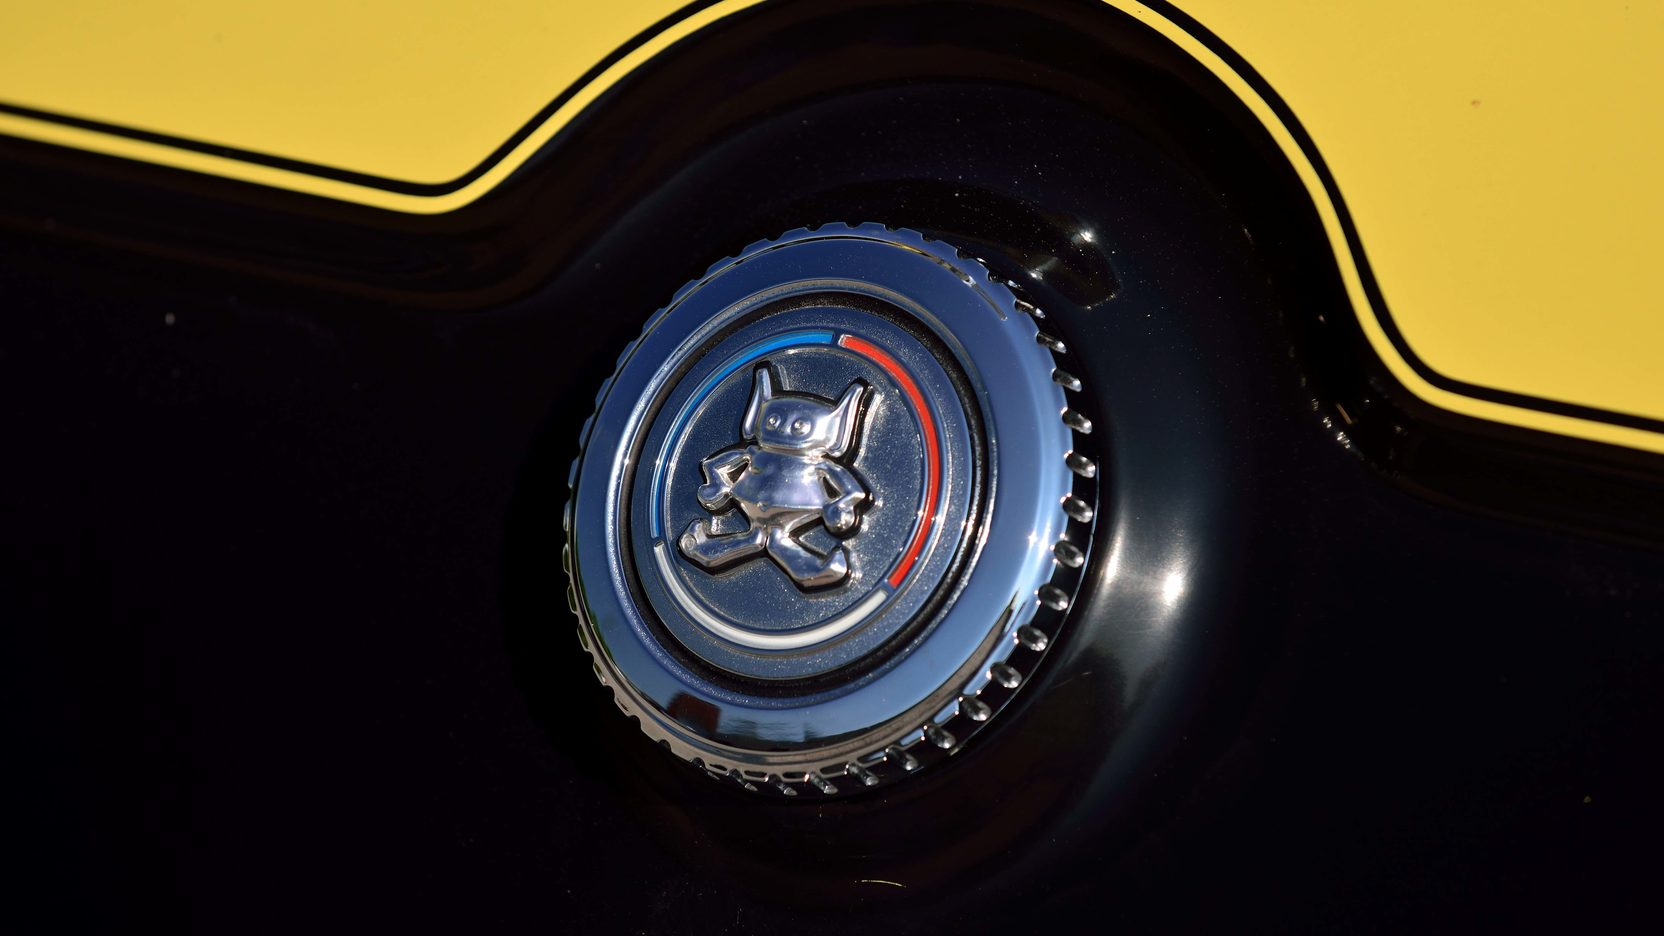 1972 AMC Gremlin badge